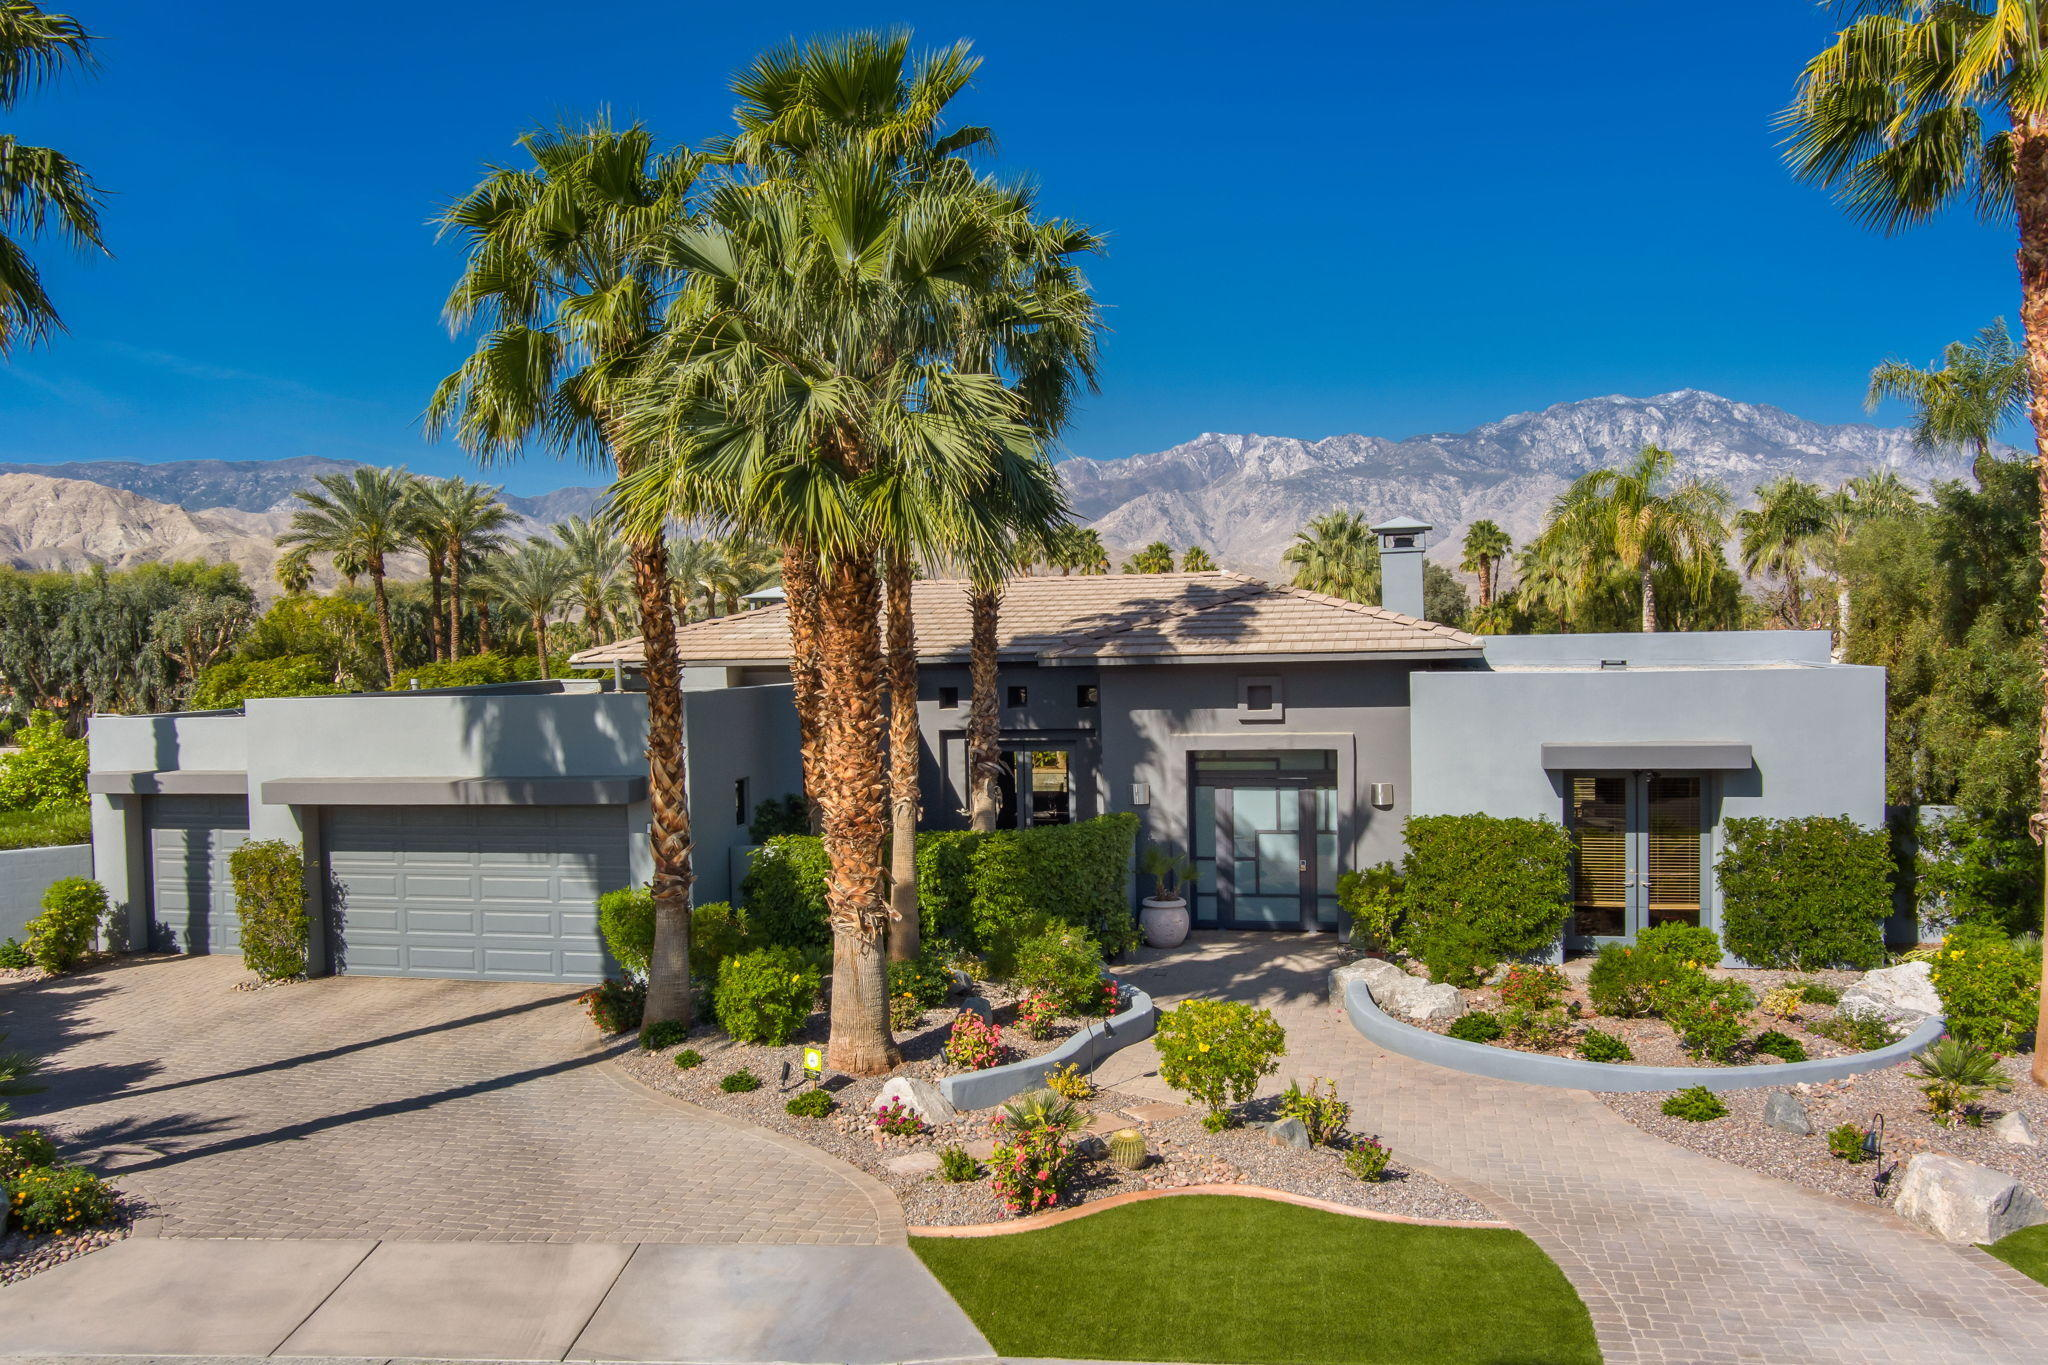 Amazing Contemporary with South and West Mountain Views on Resort Sized Lot.  Open Great Room Floor Plan and Outdoor Living Room in Coveted Artisan.   Great curb appeal with contemporary architecture and custom desert landscaping.  Enter through  contemporary gates to an outdoor entry hall with fountain.  Inside is an Open Great Room with book matched granite fireplace, built-in entertainment center, walls of glass with multiple sliders to outdoor living and stunning mountain views.   Gourmet Social Kitchen features granite countertops and stainless appliances with counter seating and views. Dining area with custom lighting and French doors.  Master Suite with custom built-ins, mountain views, French doors to the terrace and a spa bath with marble finishes.  2 guest suites each with ensuite bath with travertine finishes provide great space for friends and family or an optional office.  Outside is a true resort on an oversized lot with Covered Outdoor Living Room featuring a fireplace, TV, Built-in BBQ and Misters..   Resort Pool and Spa with waterfall and a putting green surrounded by citrus orchard all with great south and west views and sun.  Large lot provides opportunity to add a casita if desired.  Solar equipped, electric shades, updated lighting and even a garage AC - this property has it all.   Come home to your own private contemporary desert retreat!